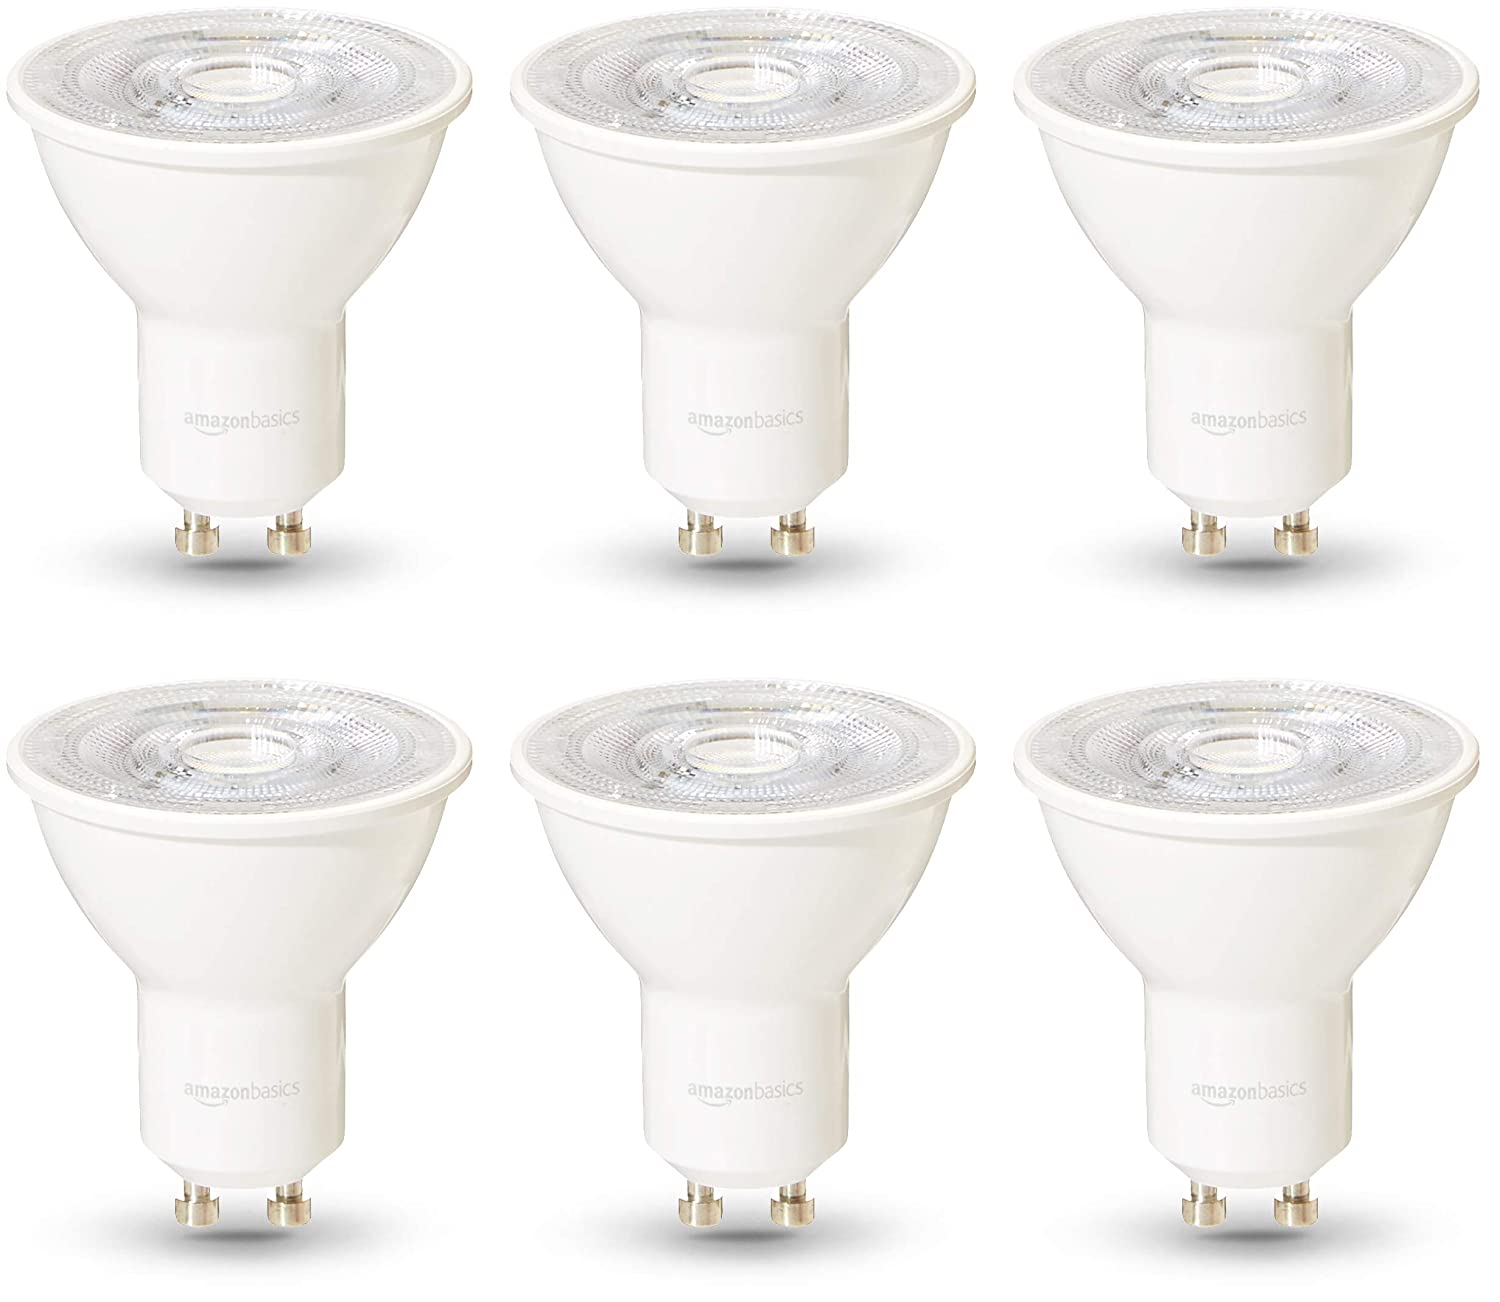 Dimmable 50W equivalent Pack of 6 Basics Professional LED GU10 Spotlight Bulb Warm White